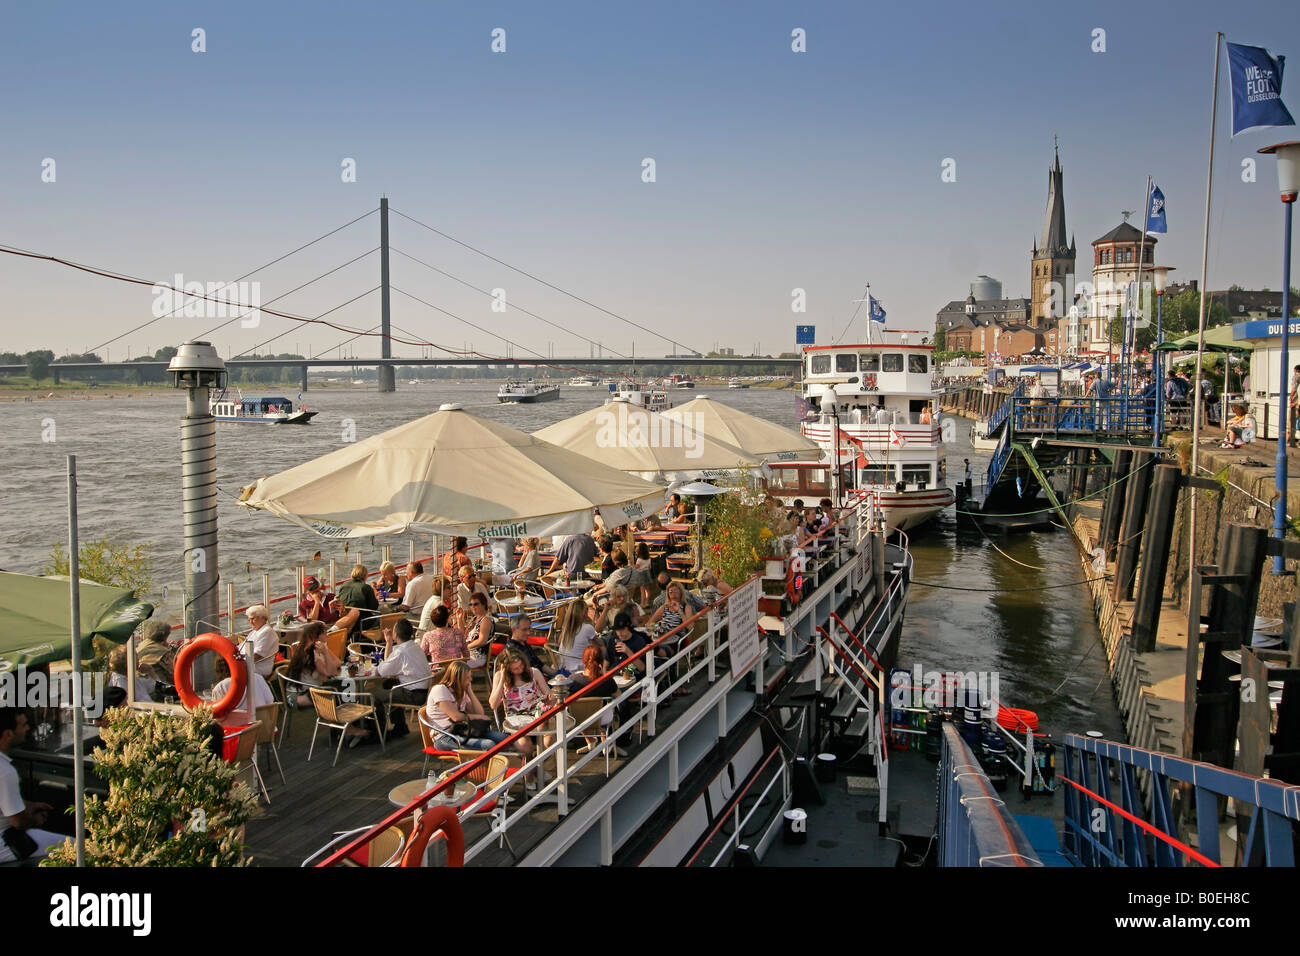 Duesseldorf Promenade at river Rhein Cafe on boats deck - Stock Image